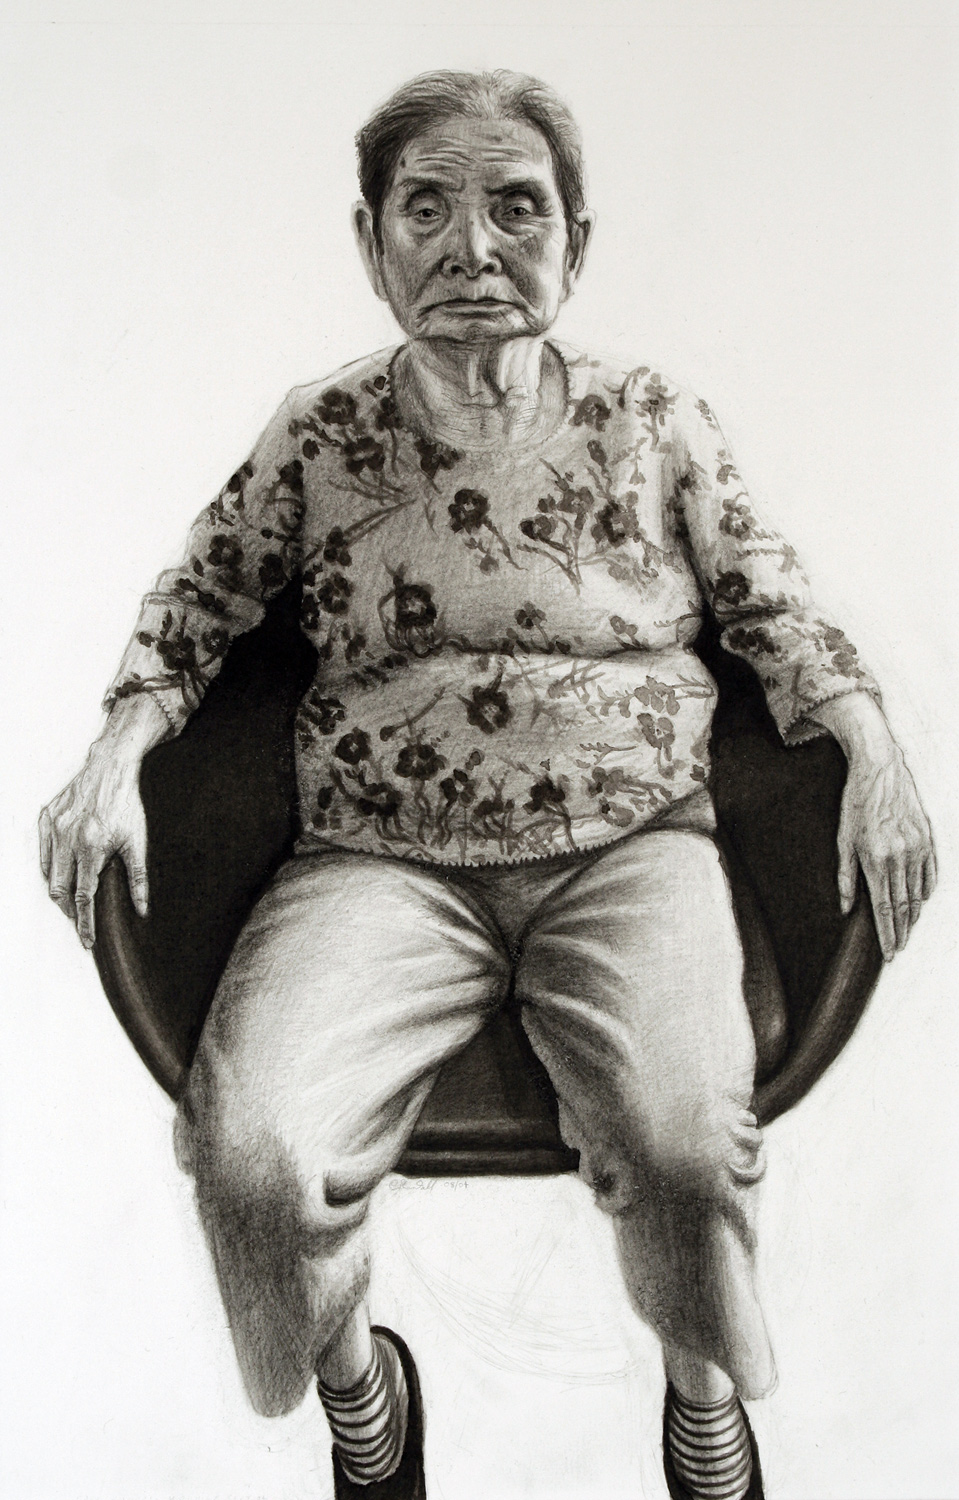 Survivor of the atomic bomb, Hiroshima (Ms.Hideko Takahata)